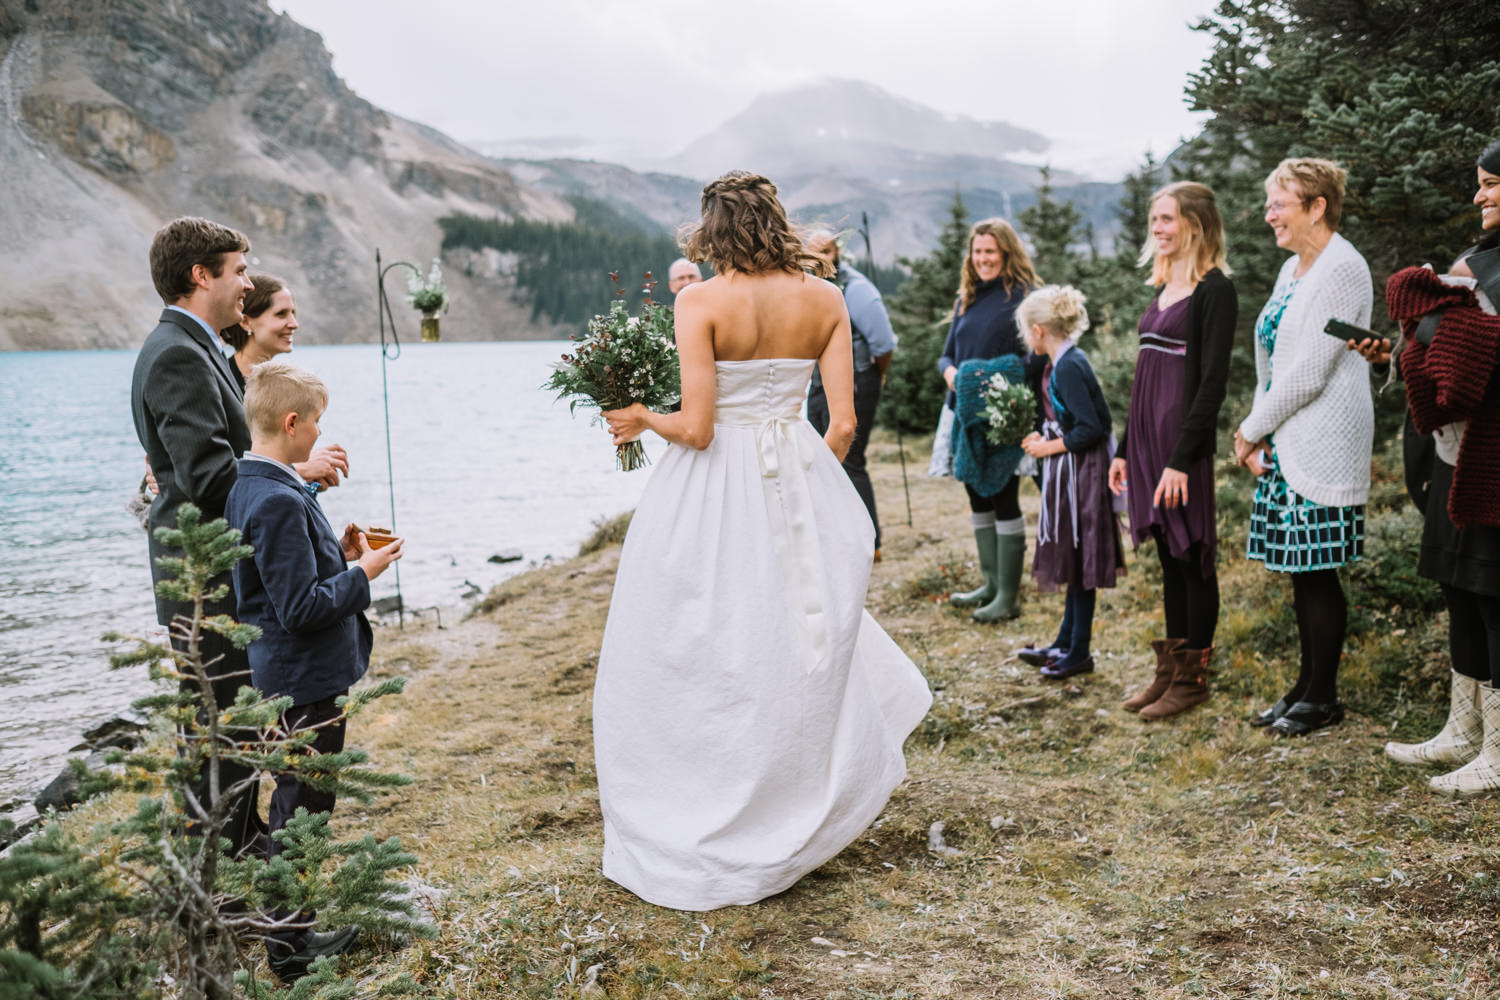 banff-wedding-photographer-packages-10014